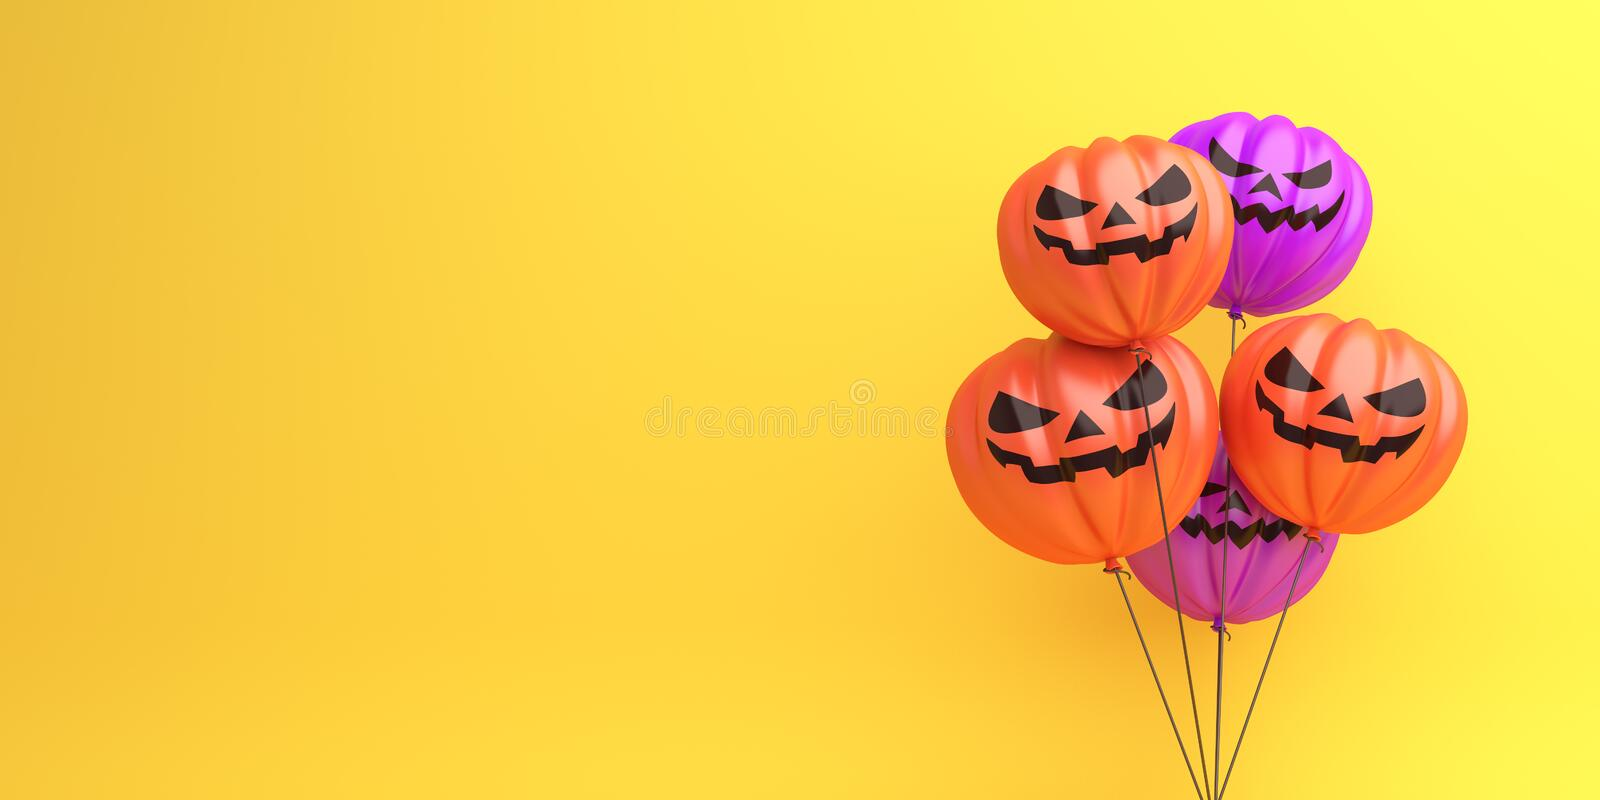 Happy Halloween design creative concept celebration holiday, Pumpkin balloons on orange background, copy space text area. 3D rendering illustration vector illustration